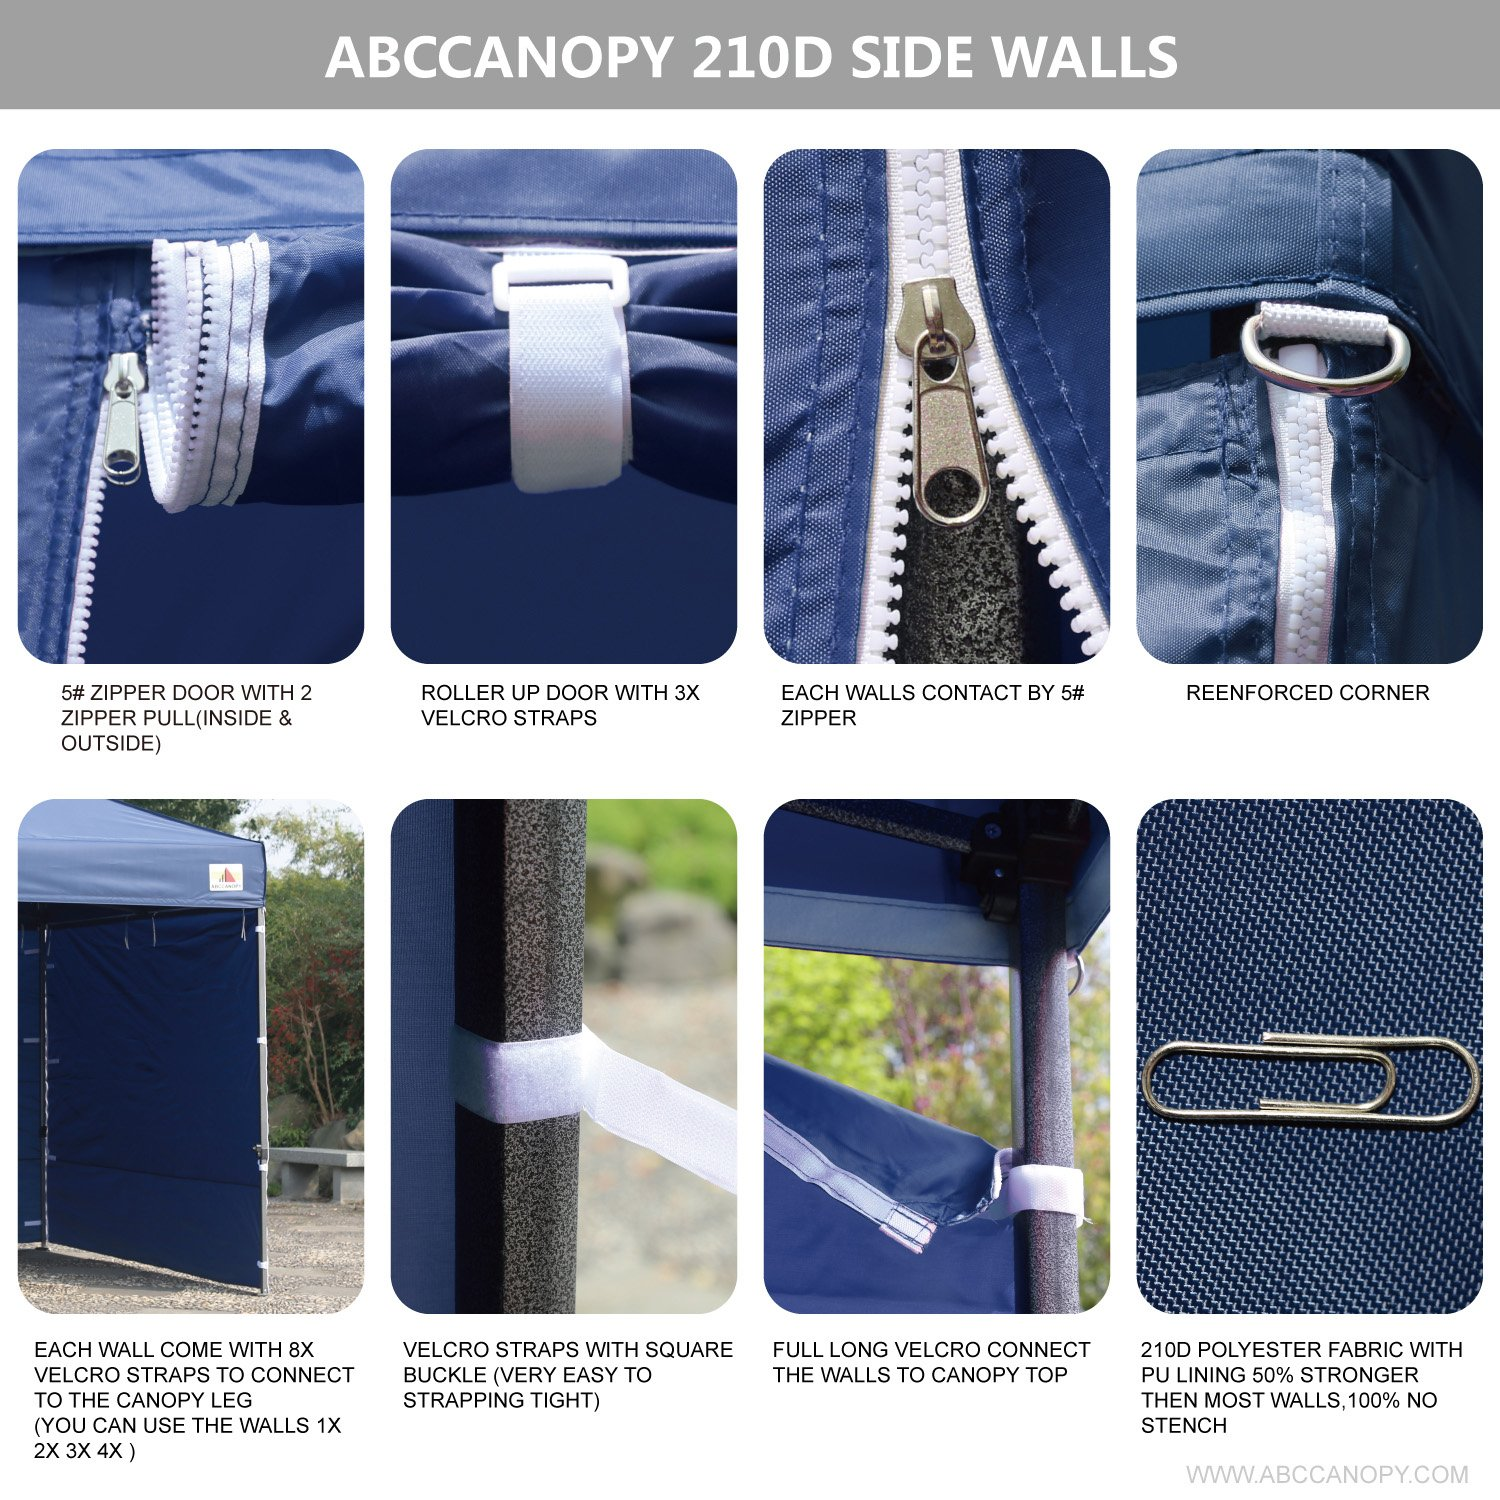 AbcCanopy Commercial 10x10 Instant Canopy Craft Display Tent Portable Booth Market Stall with Wheeled Carry Bag & Full Walls , Bonus 4x Weight Bag & 10ft Screen Wall & 10ft Half Wall (NAVY BLUE) by abccanopy (Image #5)